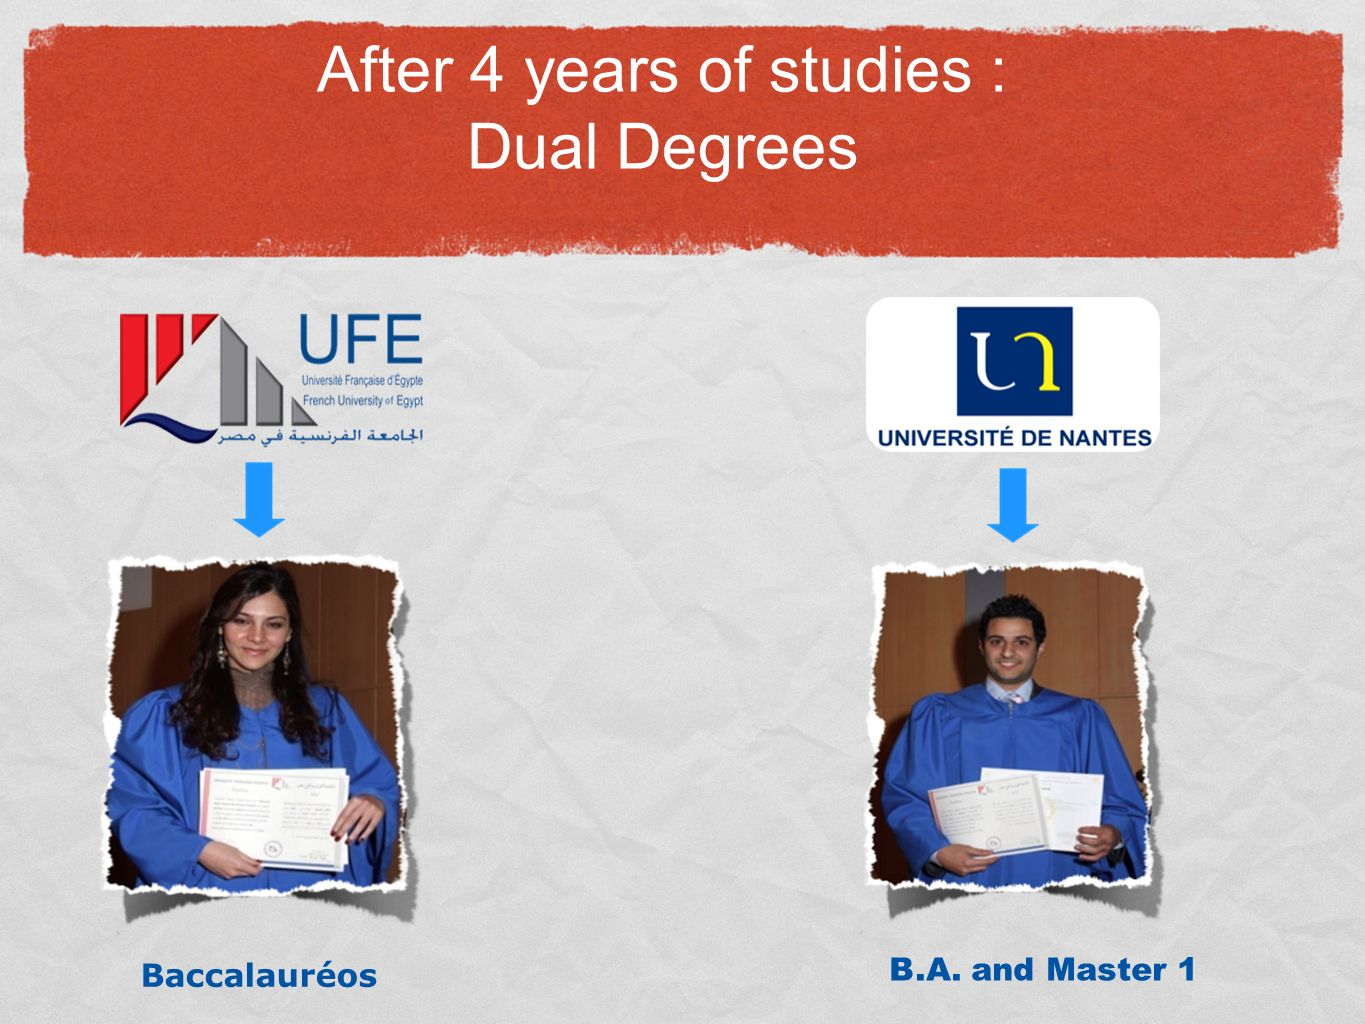 After 4 years of studies : Dual Degrees Baccalauréos B.A. and Master 1